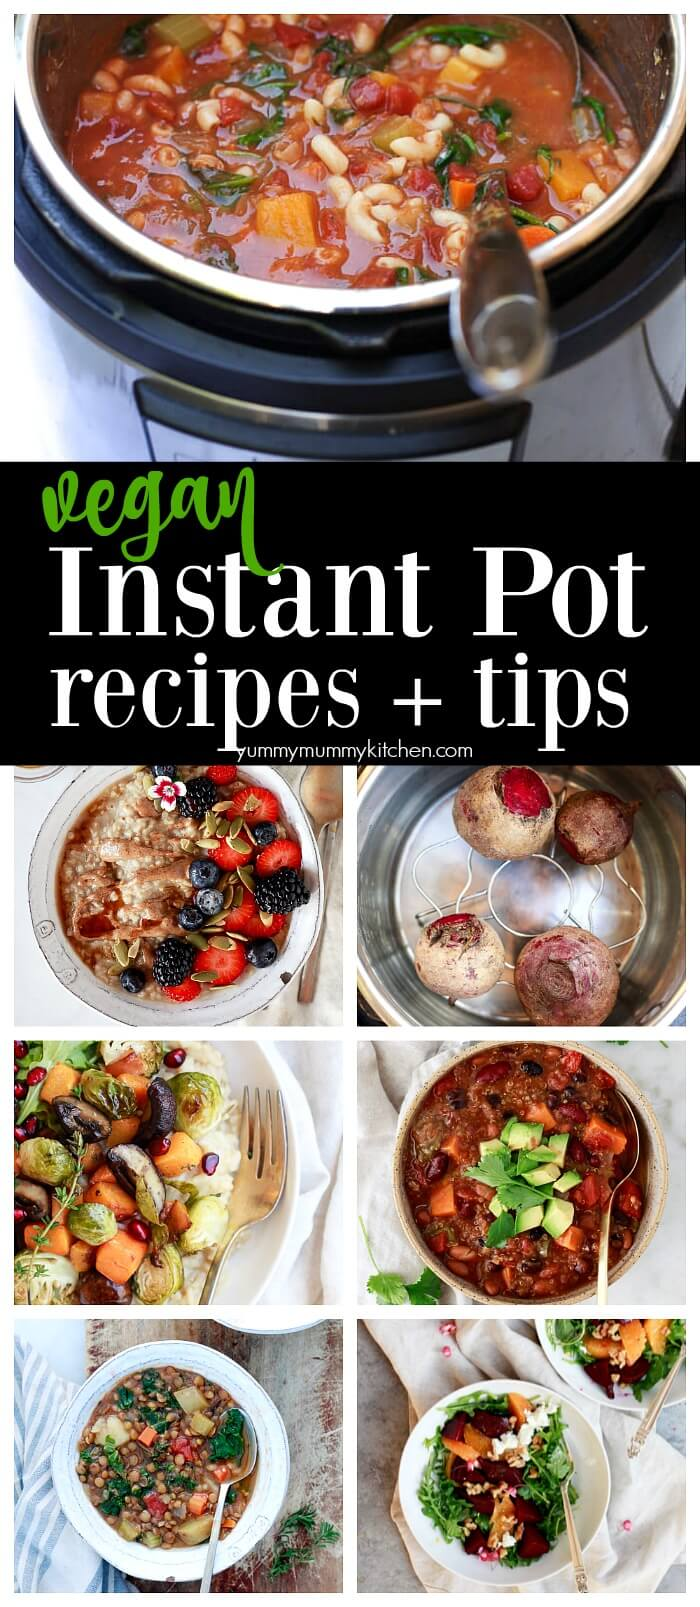 The best vegetarian, vegan, plant-based Instant Pot recipes! From healthy vegan Instant Pot dinners, to soups, chili, risotto, and chocolate cake, this is the ultimate list of vegan Instant Pot recipes.